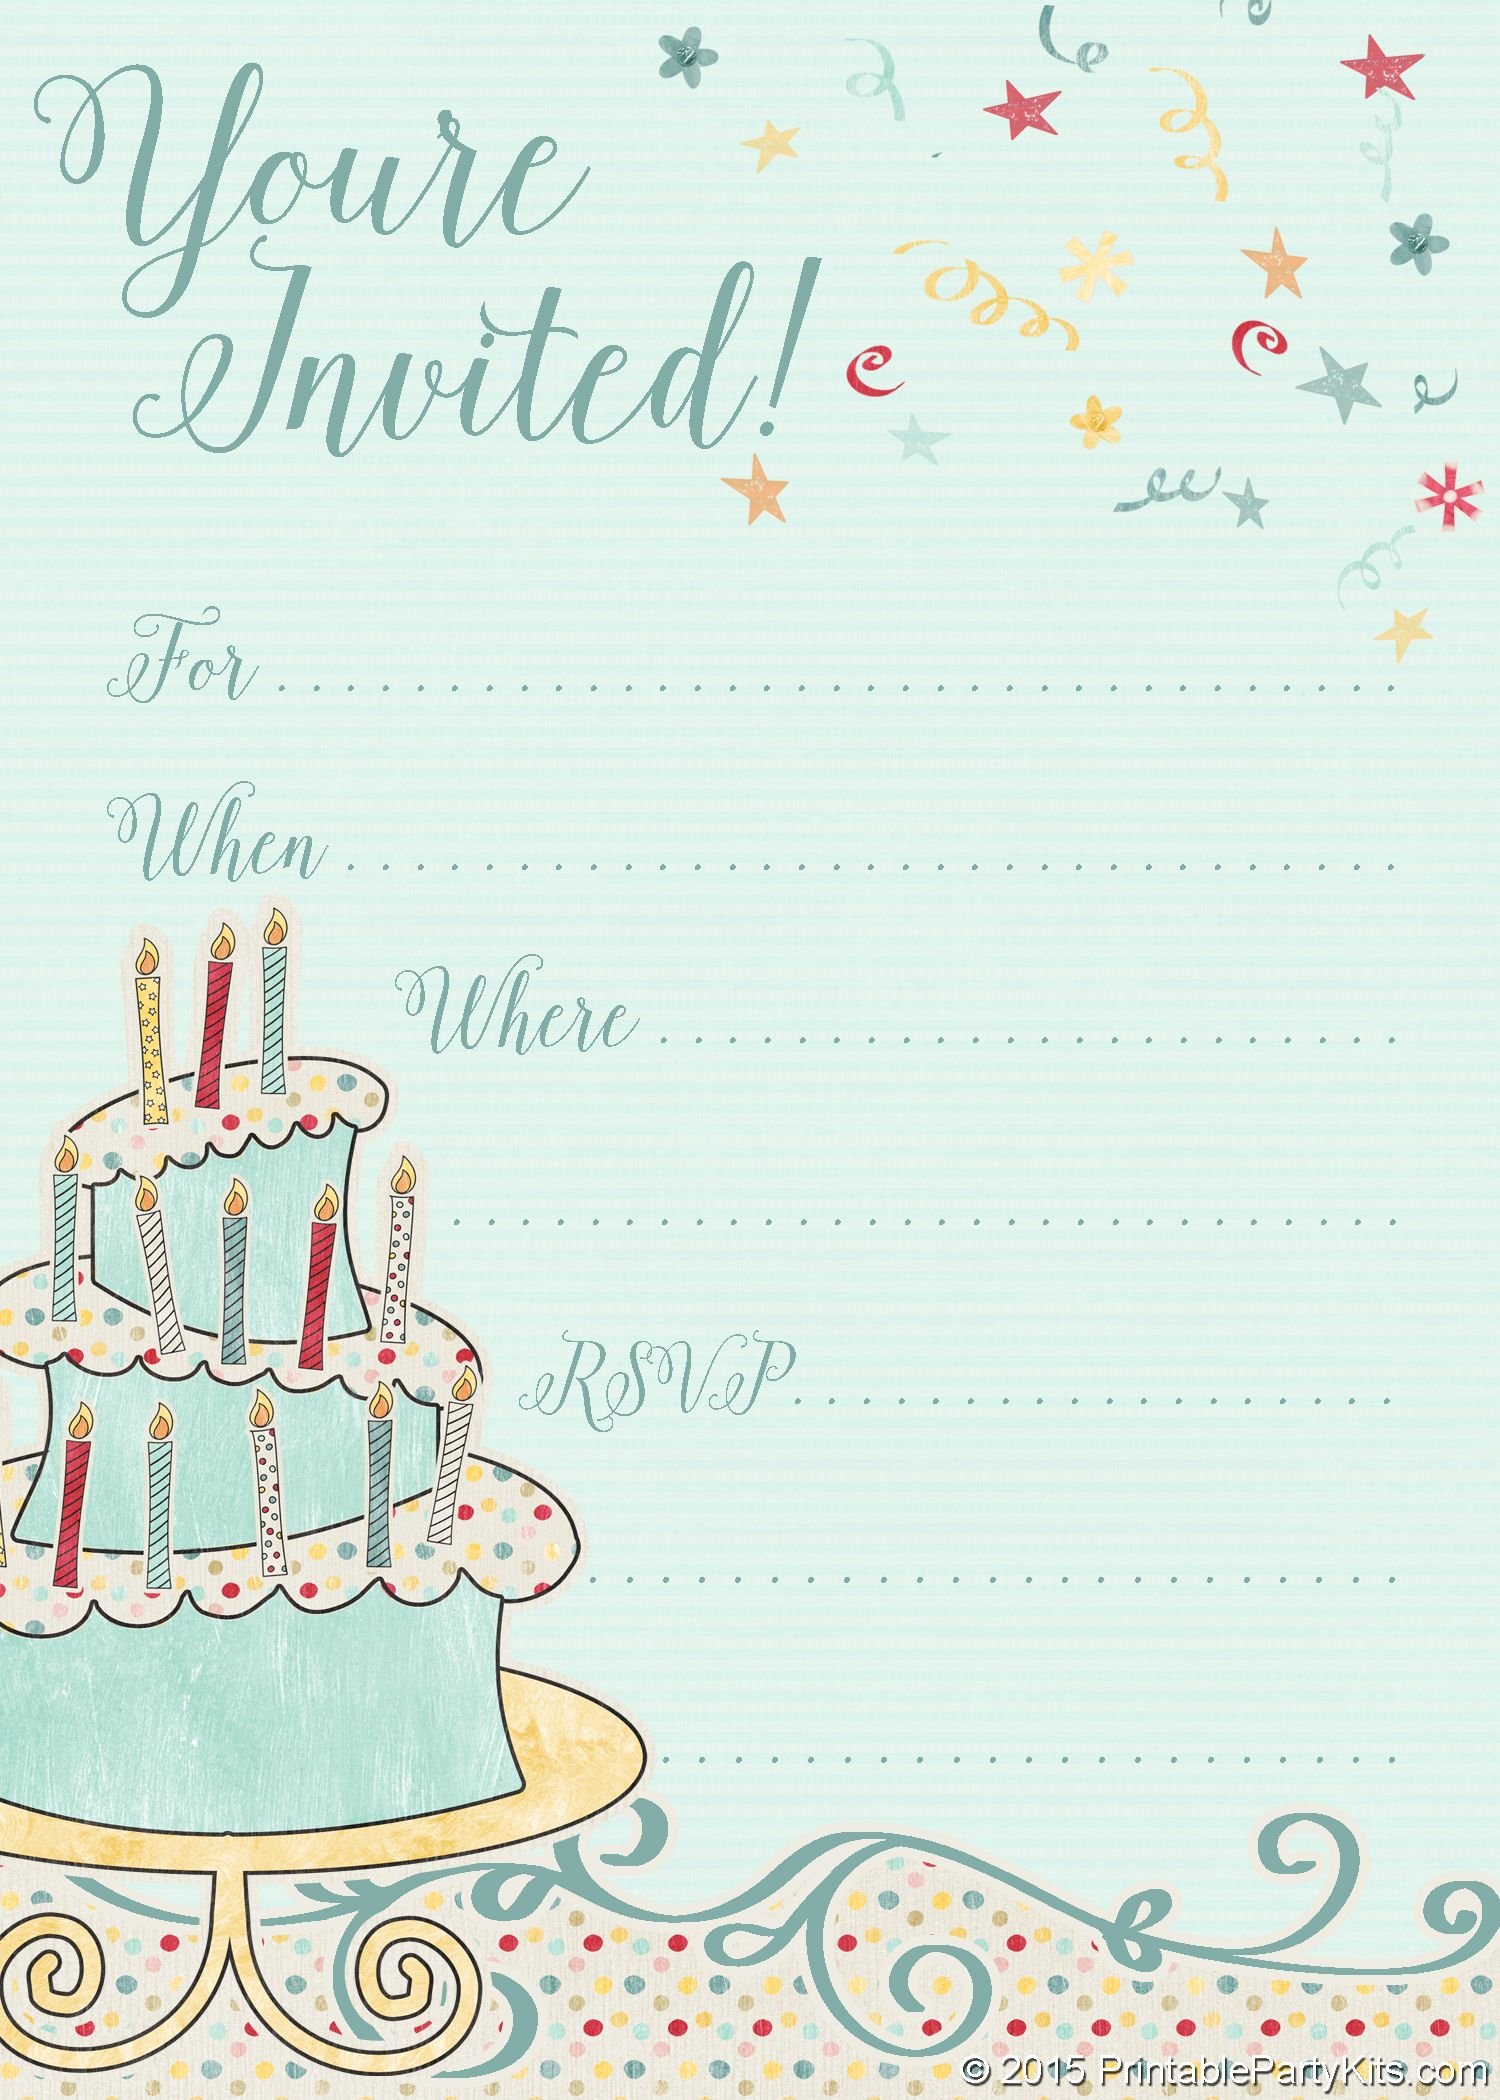 Free Printable Whimsical Birthday Party Invitation Template Birthday Party Invitations Printable Birthday Invitation Card Template Party Invite Template